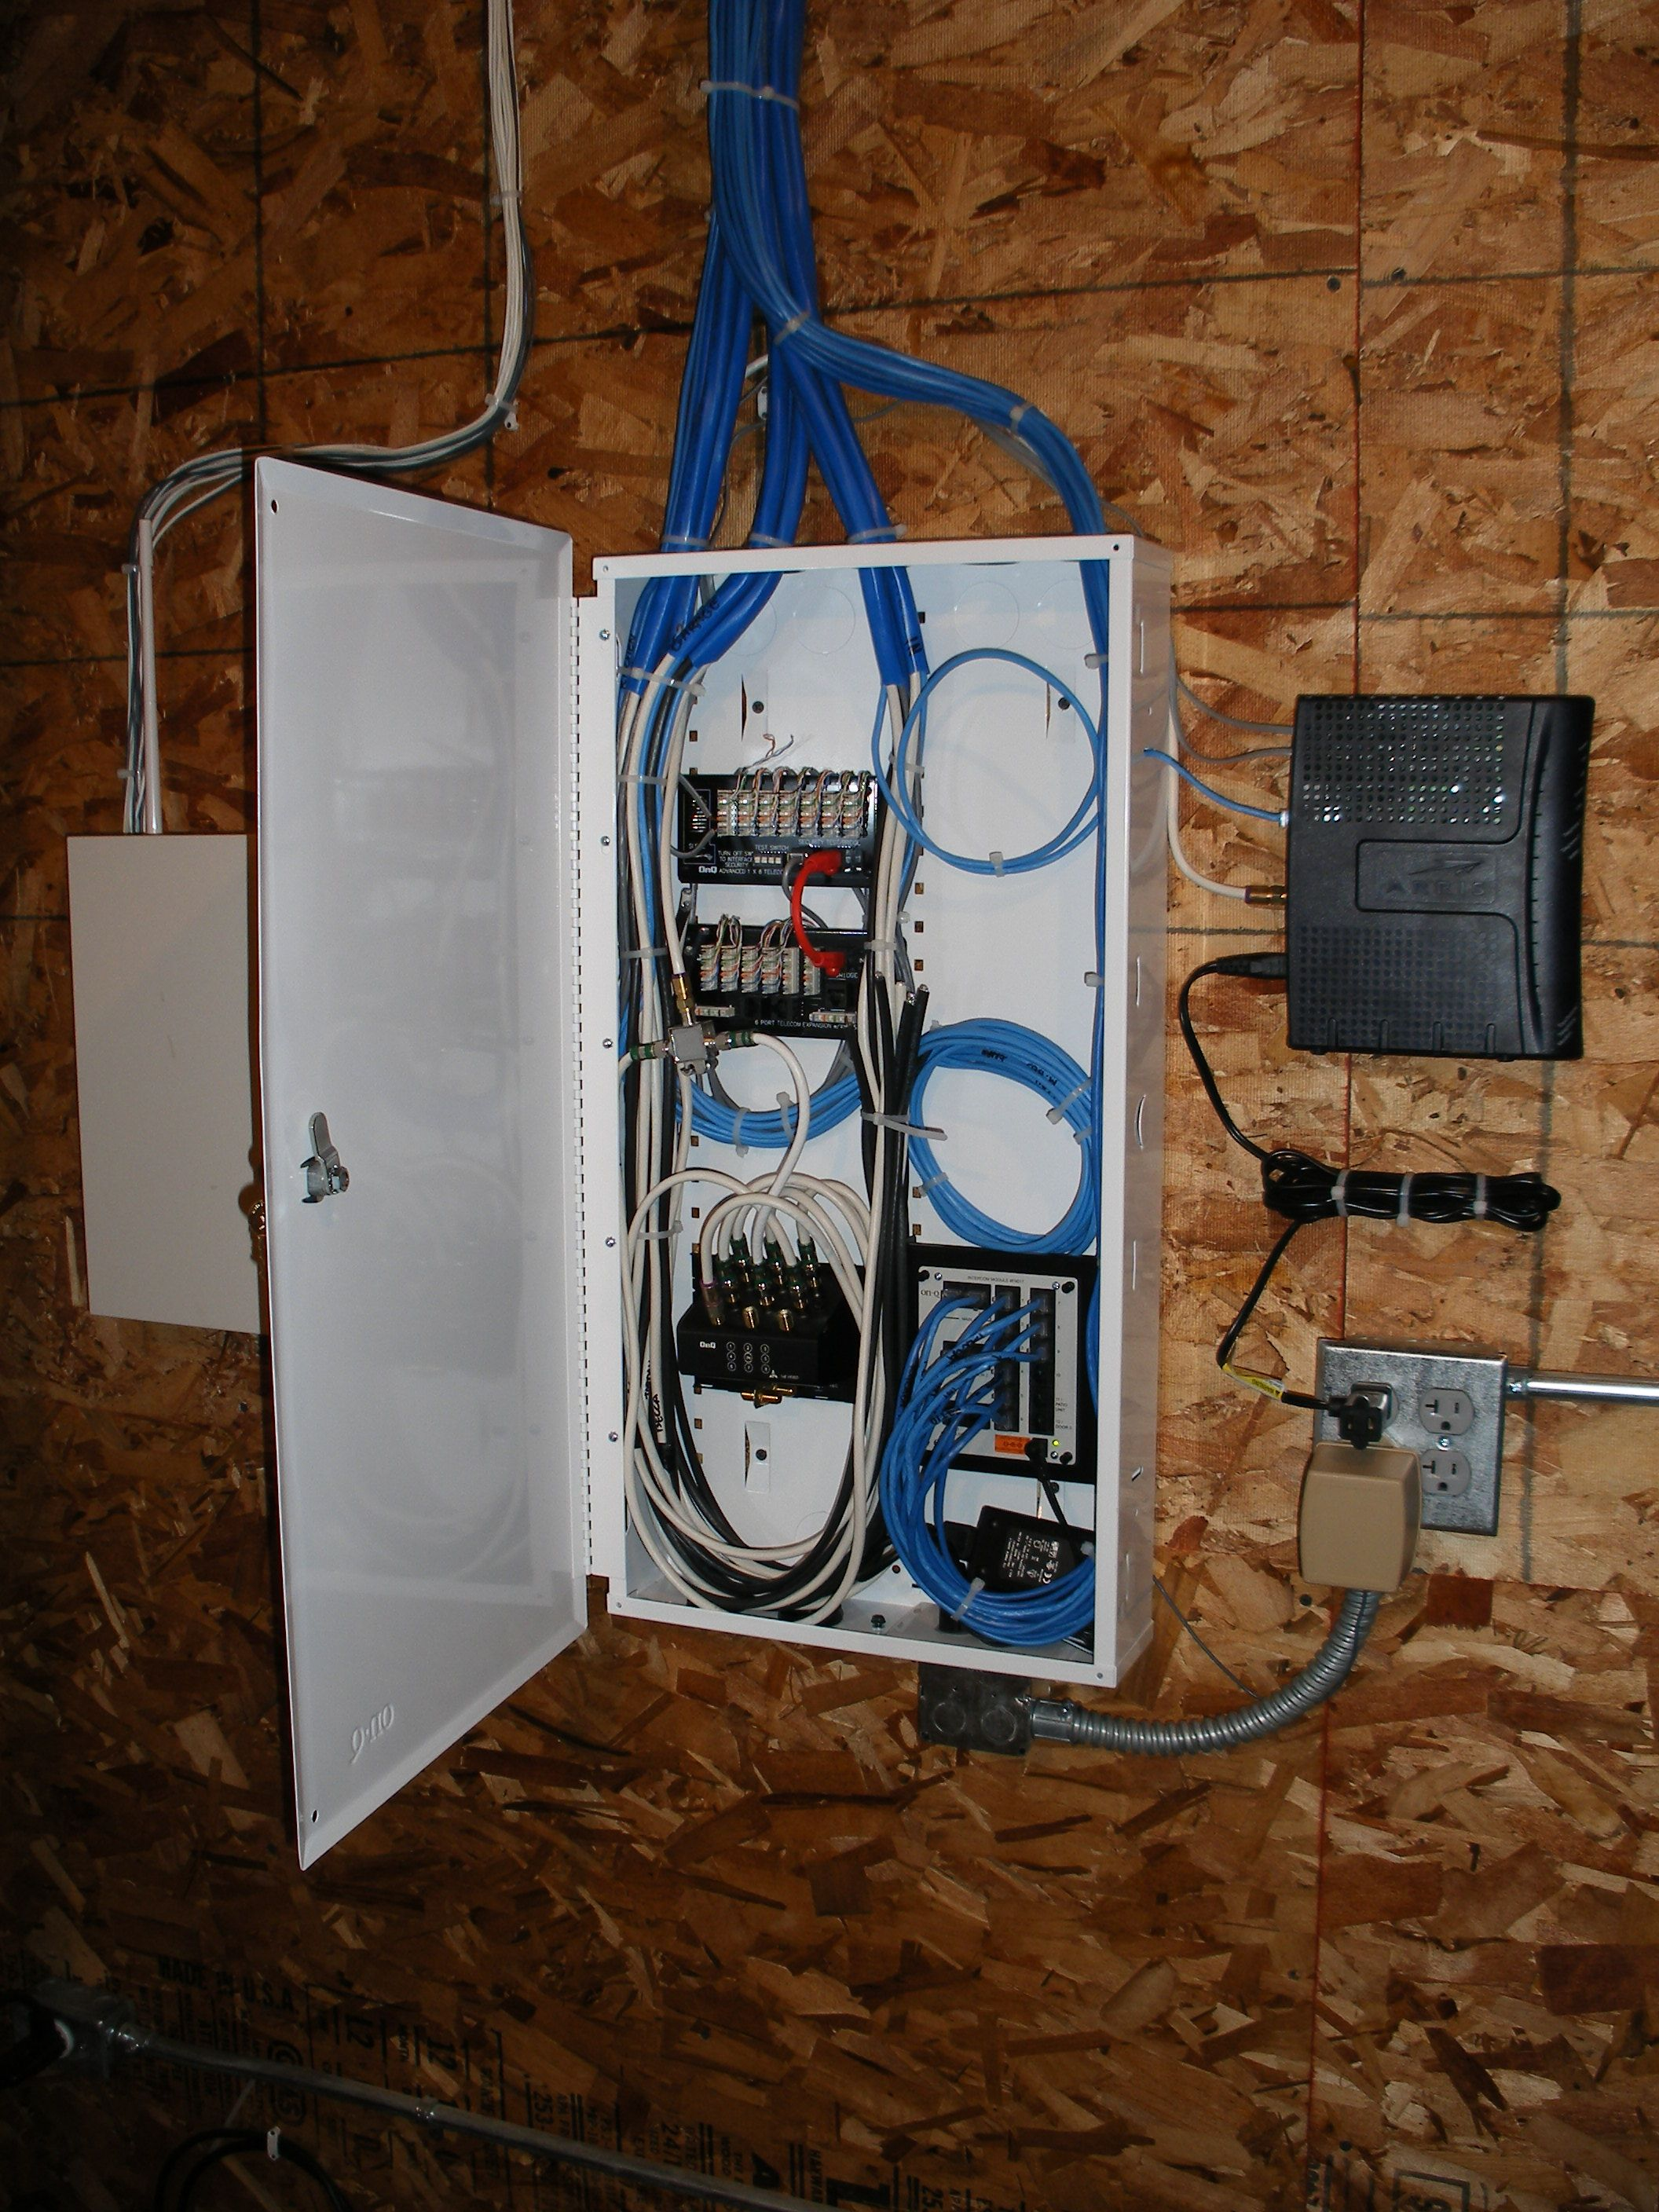 medium resolution of whole house structured wiring networking set ups cabinets panels picture